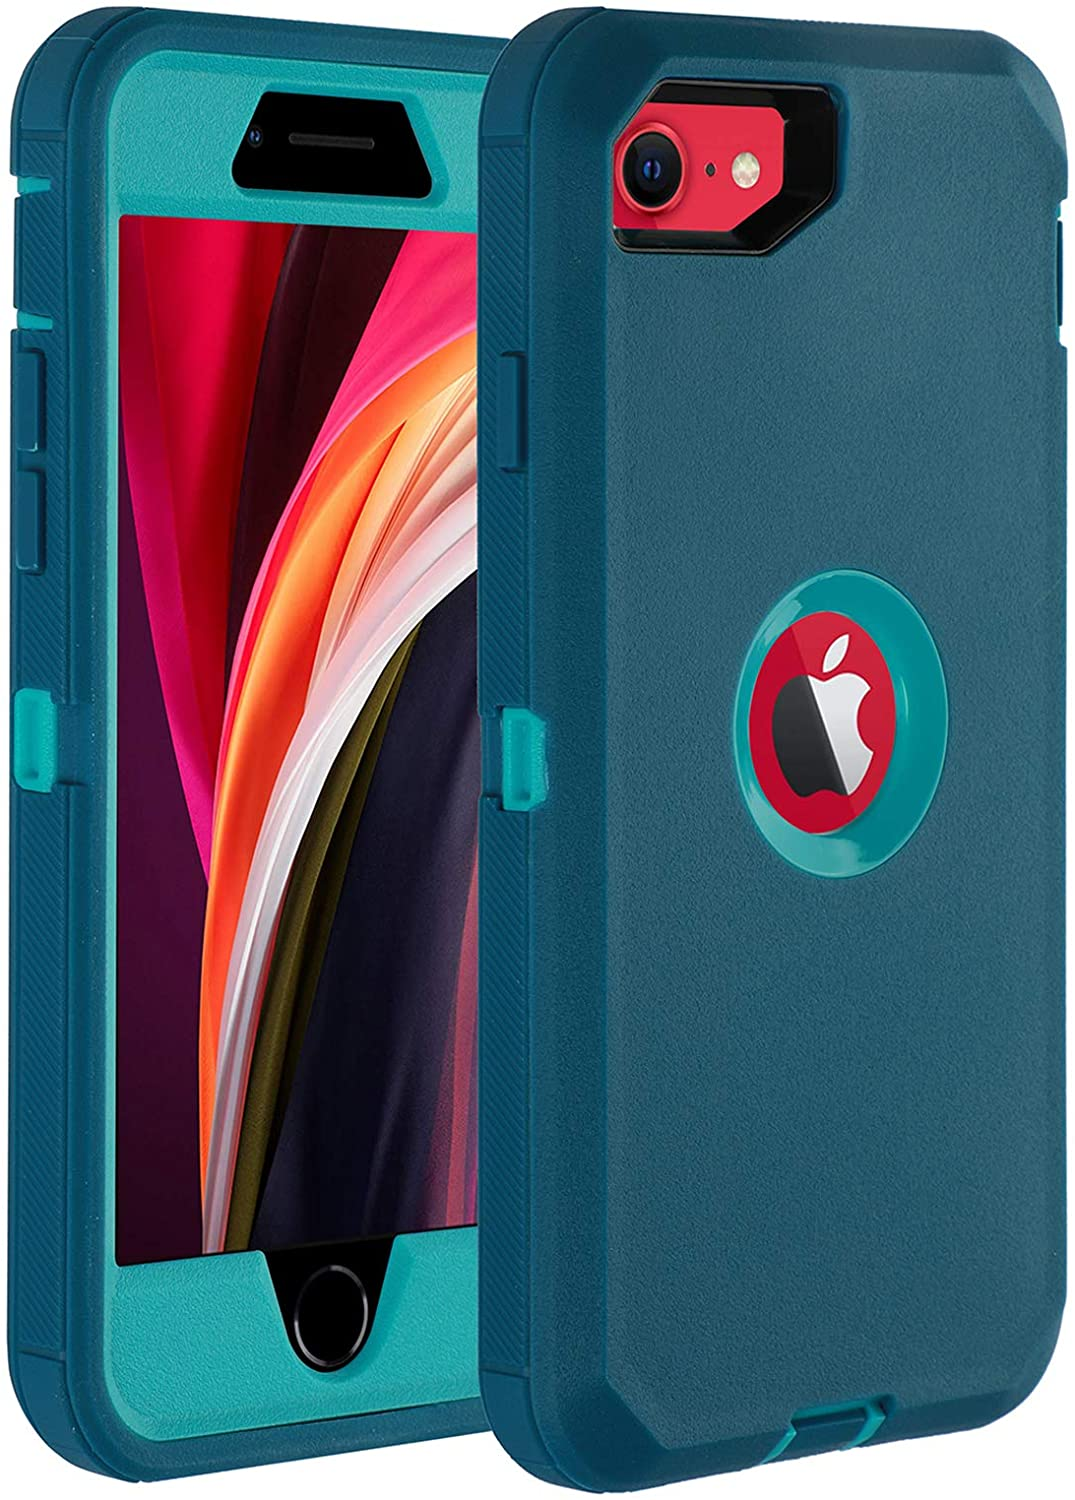 """Co-Goldguard Case for iPhone SE 2020 Heavy Duty Cover 3 in 1 Built-in Screen Protector Durable Cover Dust-Proof Shockproof Drop-Proof Shell for iPhone SE 2nd 4.7""""(Aqua Blue)"""